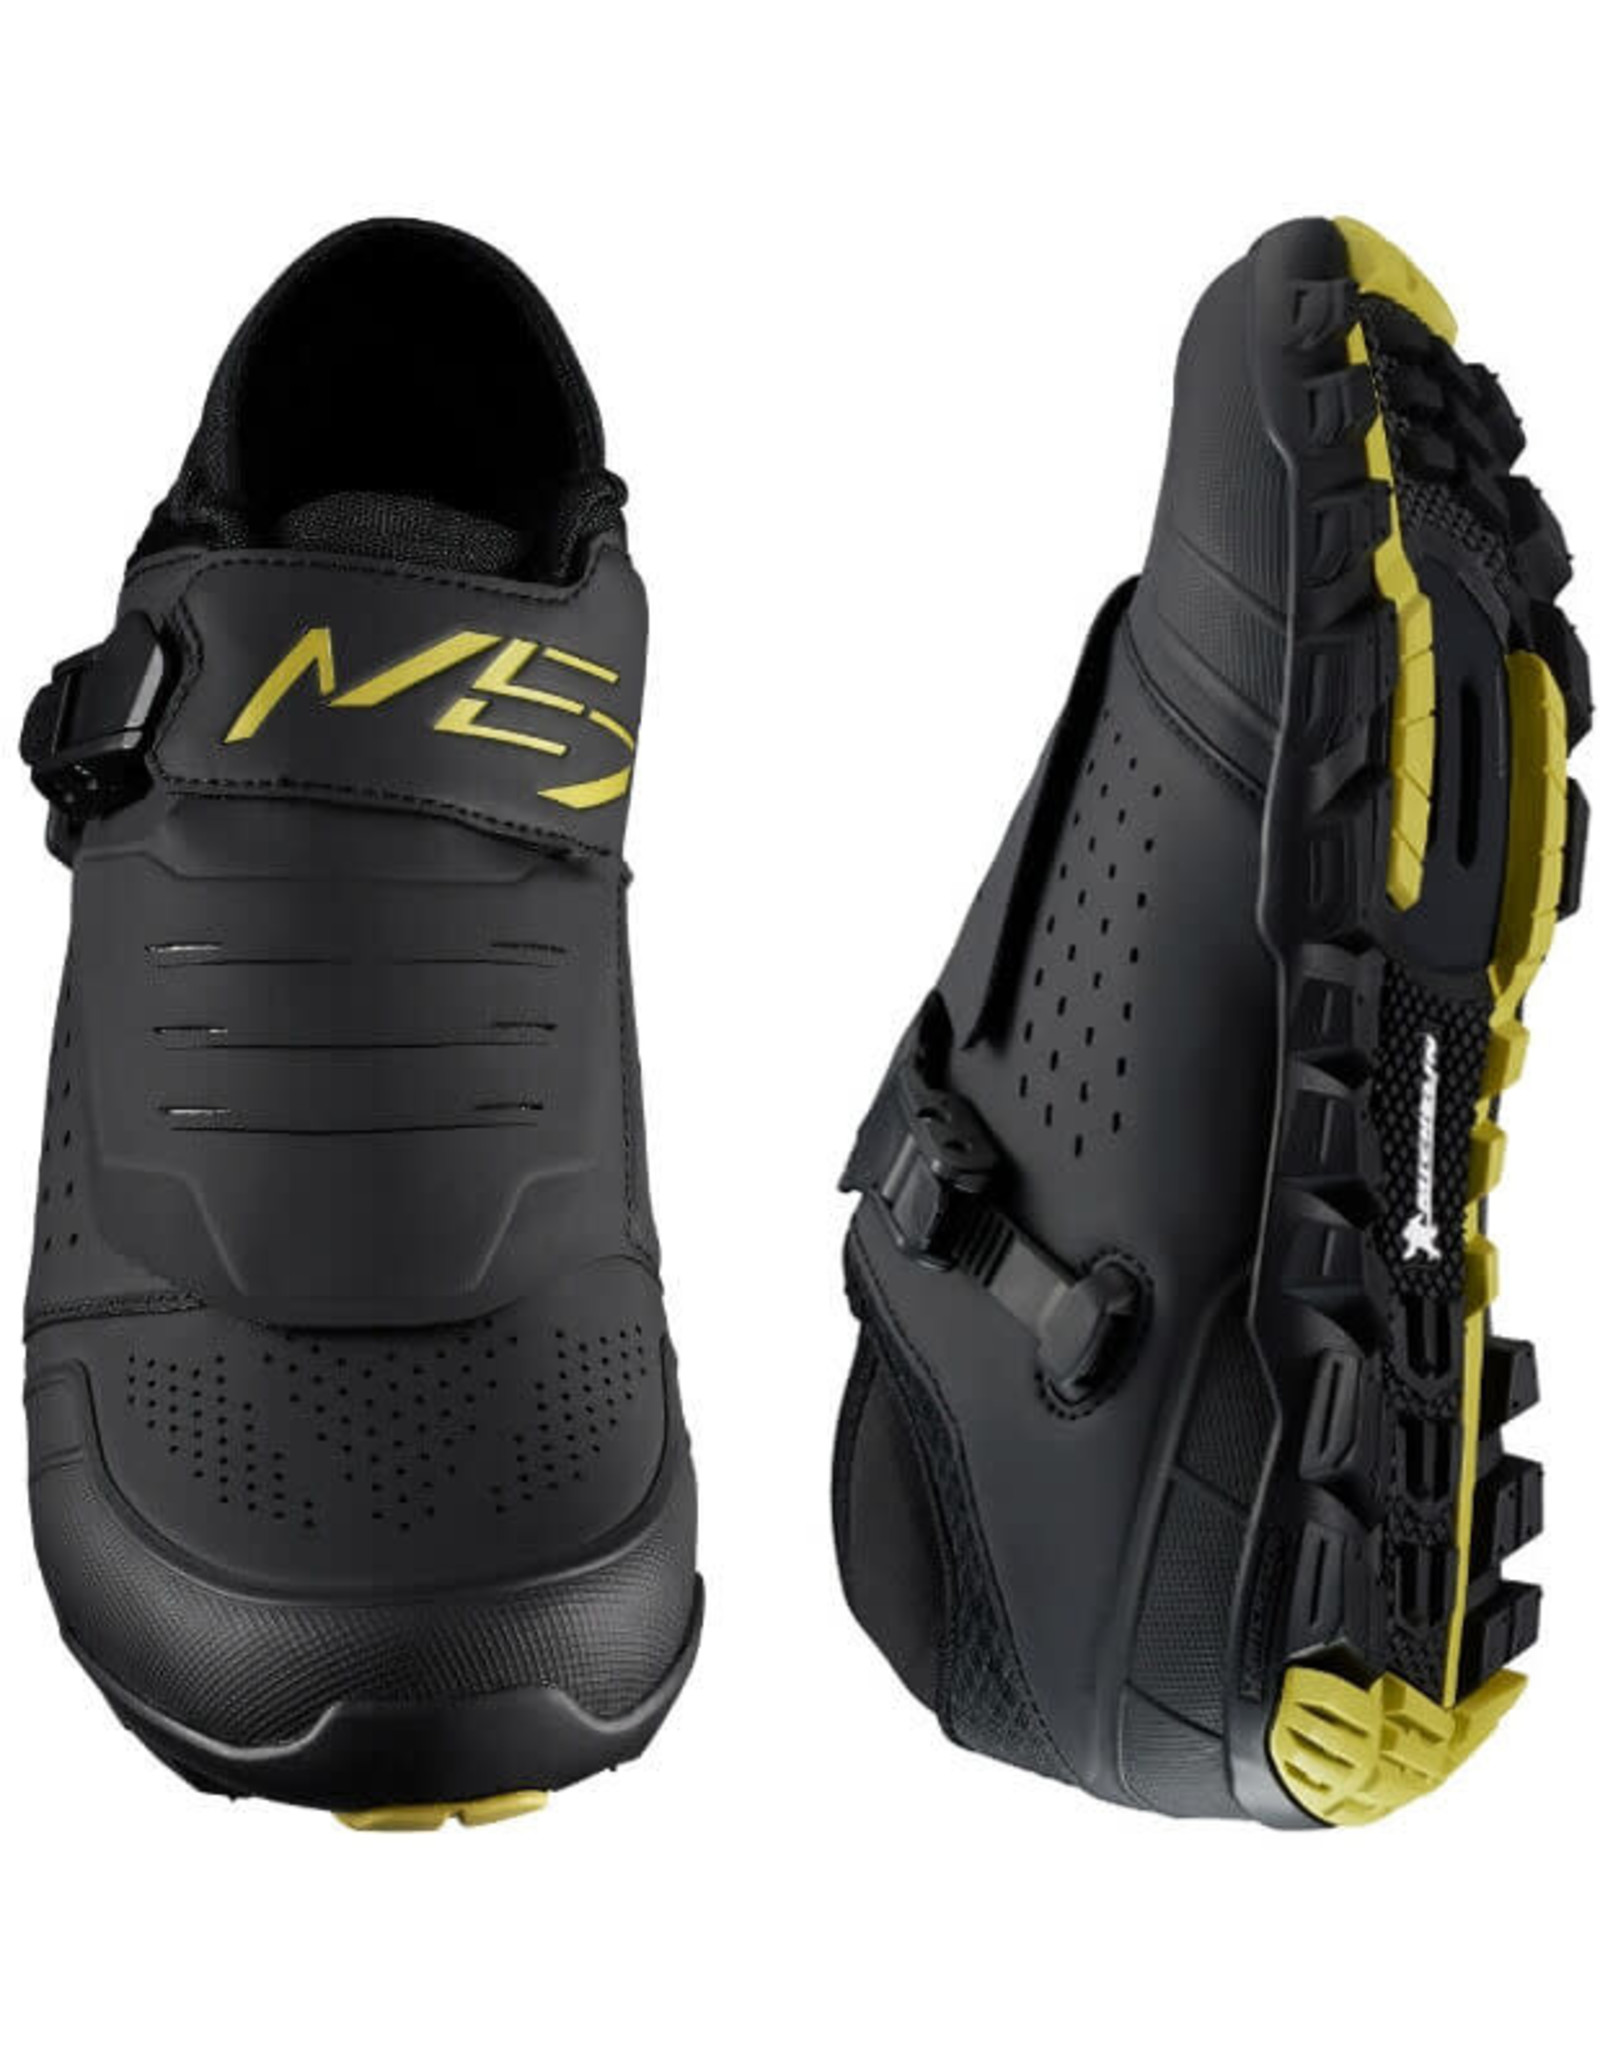 Shimano ME701 Mens MTB Shoe Black/Yellow 43